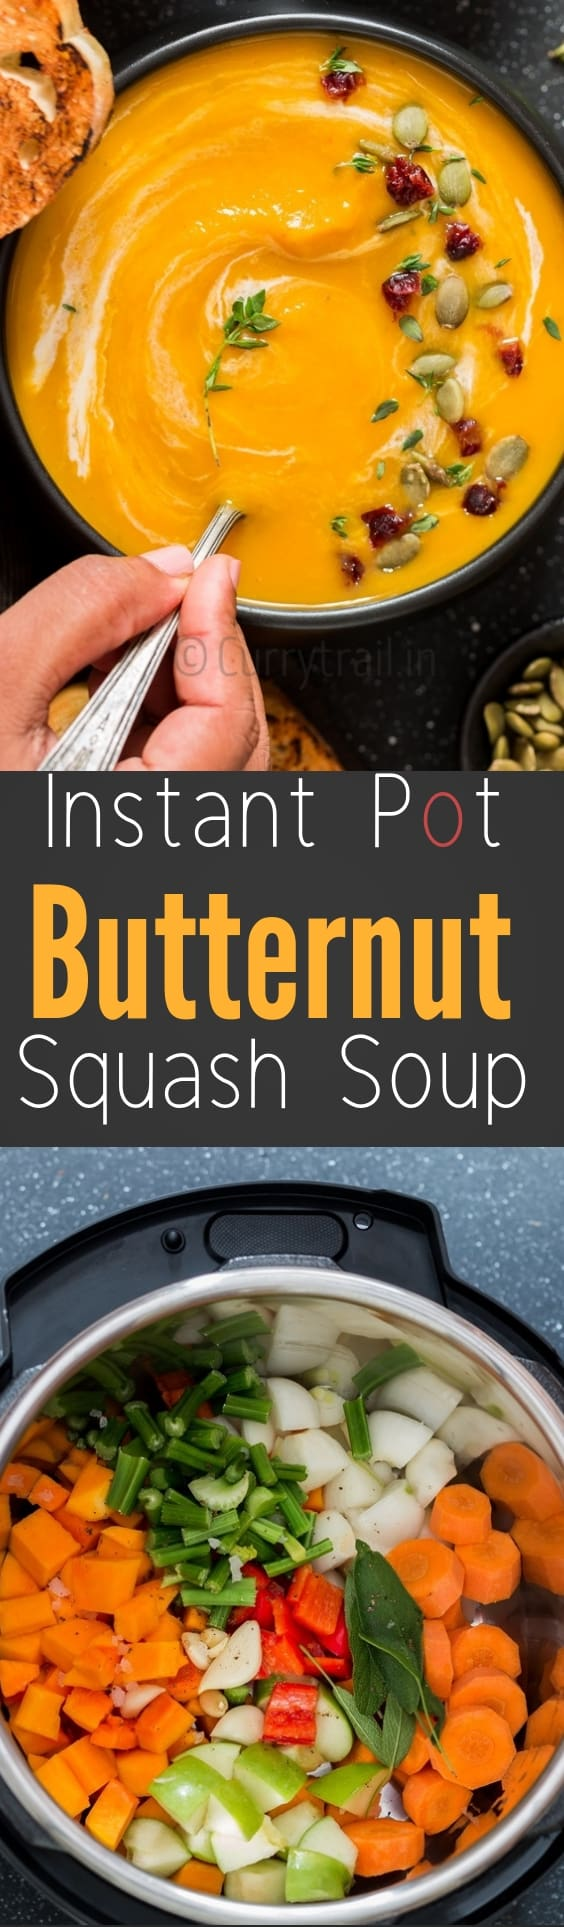 instant pot butternut squash soup served in black bowl with text overlay